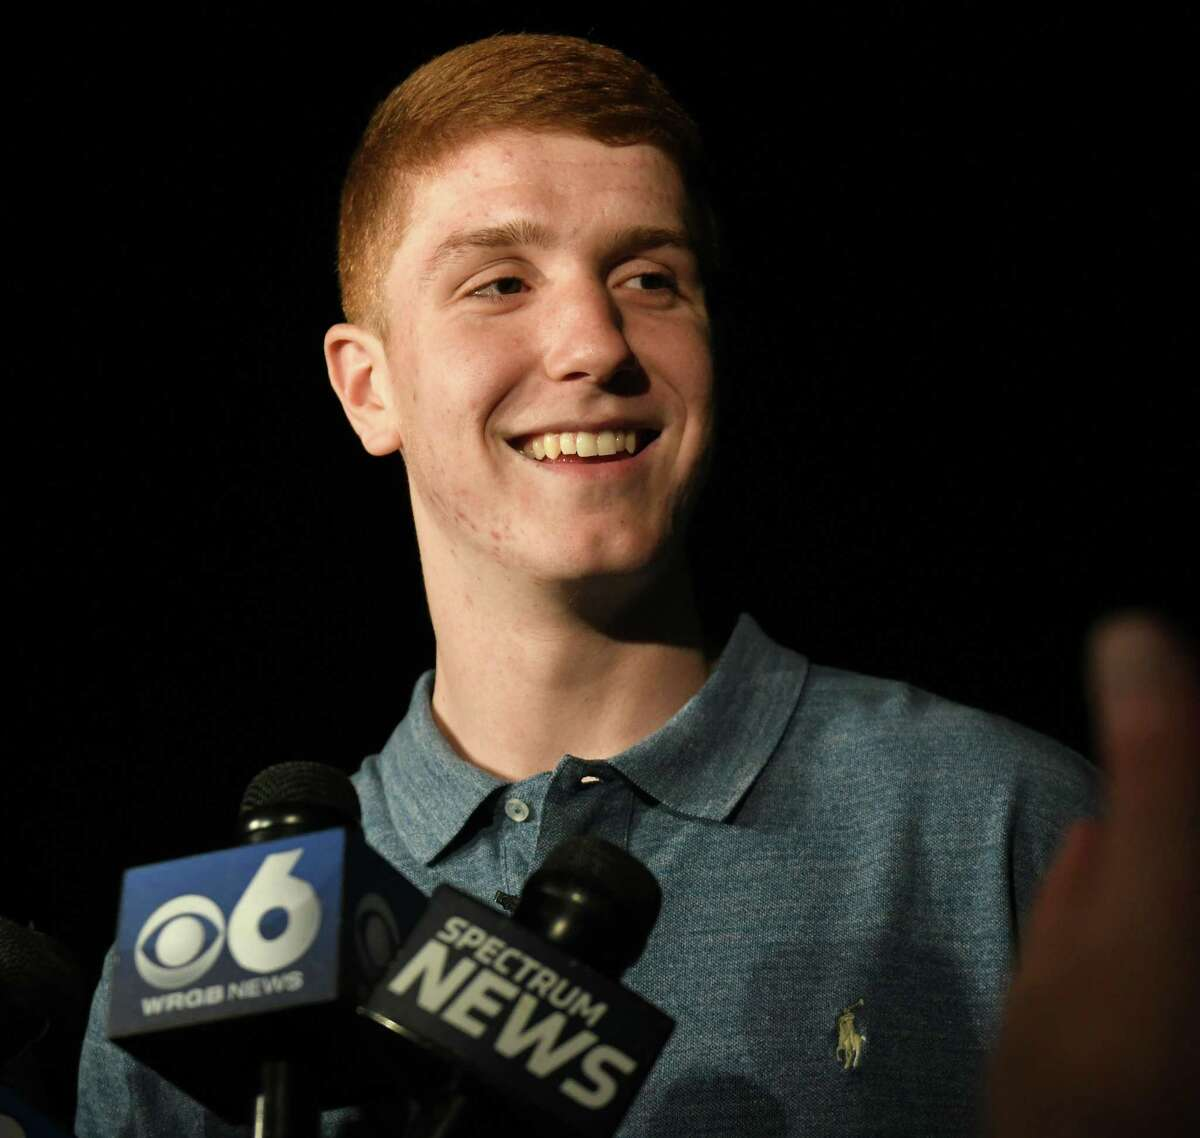 Shenendehowa graduate Kevin Huerter talks to the press after he is picked by the Atlanta Hawks in the first round of the 2018 NBA Draft, 19th overall, at the Edison Club on Thursday, June 21, 2018 in Rexford, N.Y. (Lori Van Buren/Times Union)